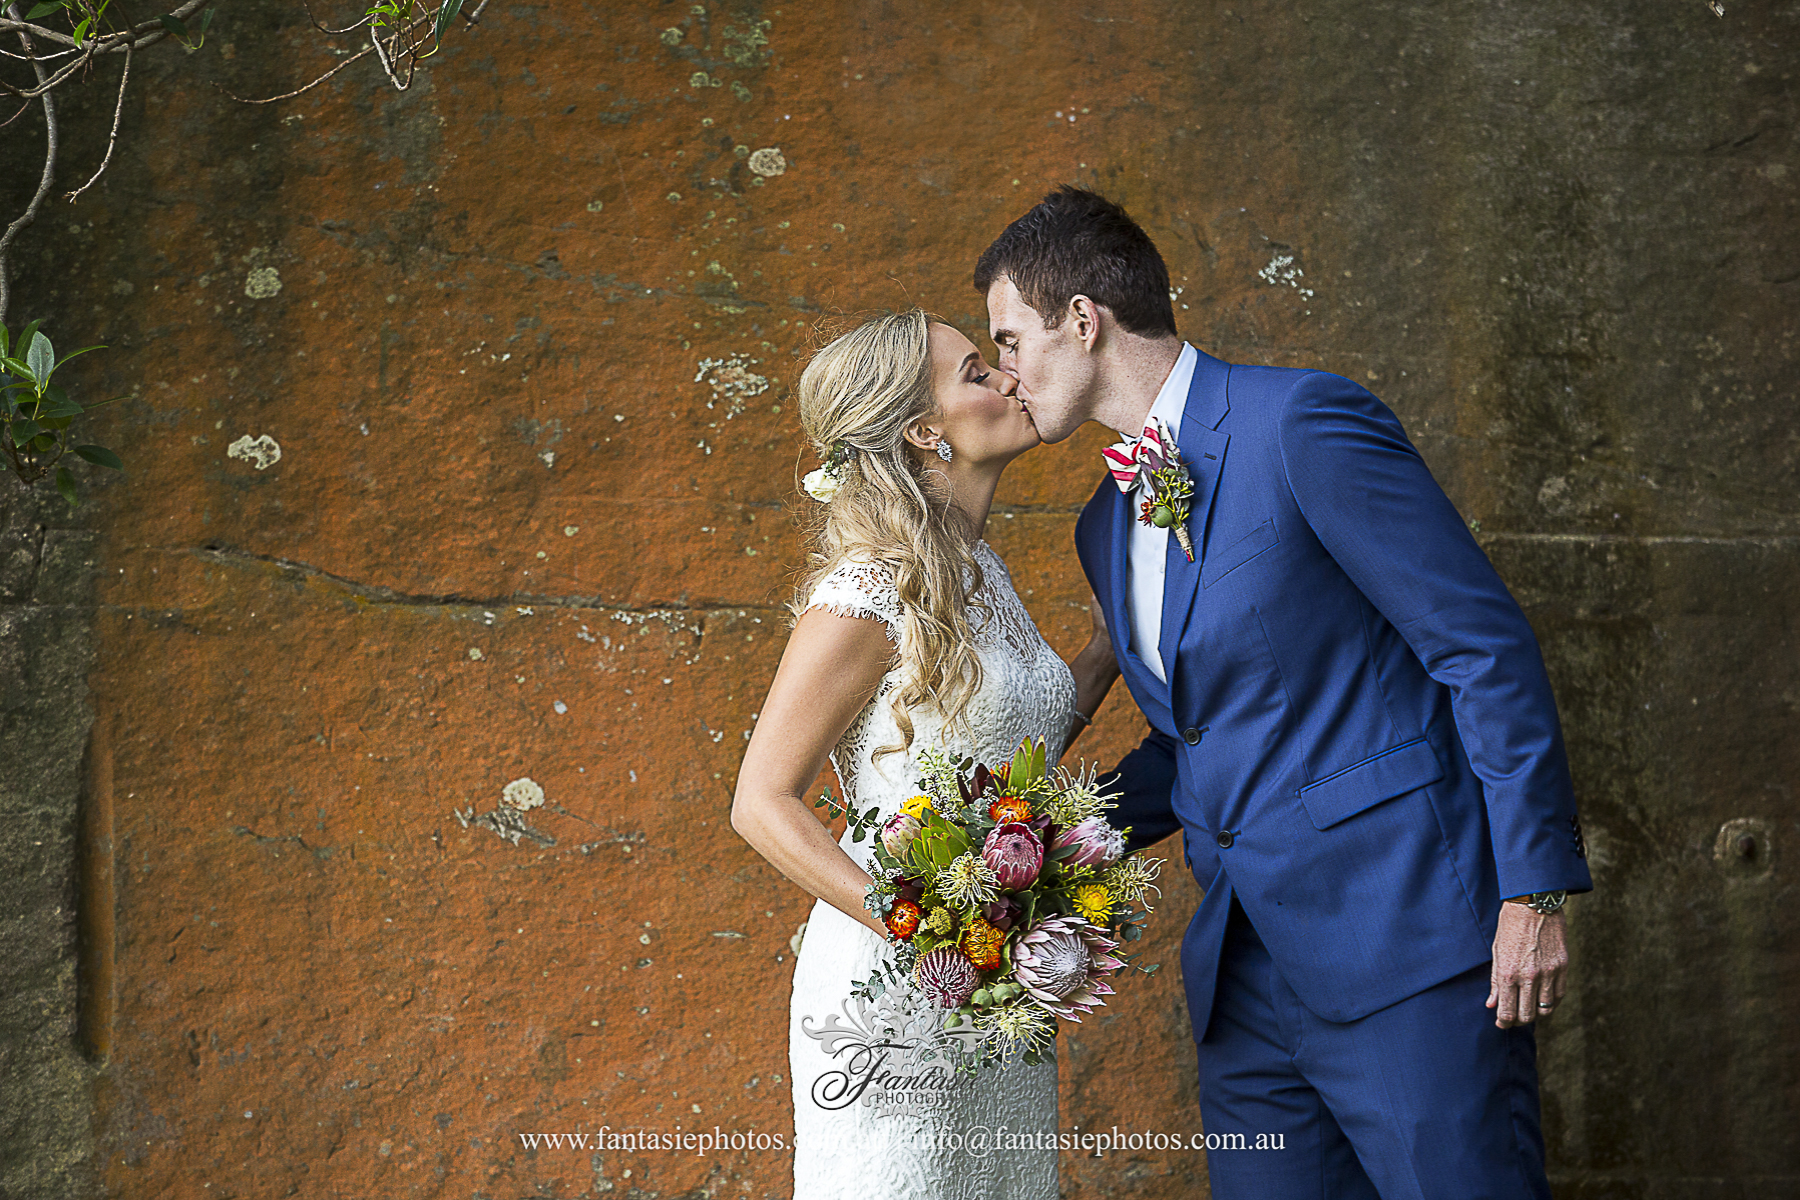 Sunset Wedding Location Shoot at Mosman | Fantasie Photography